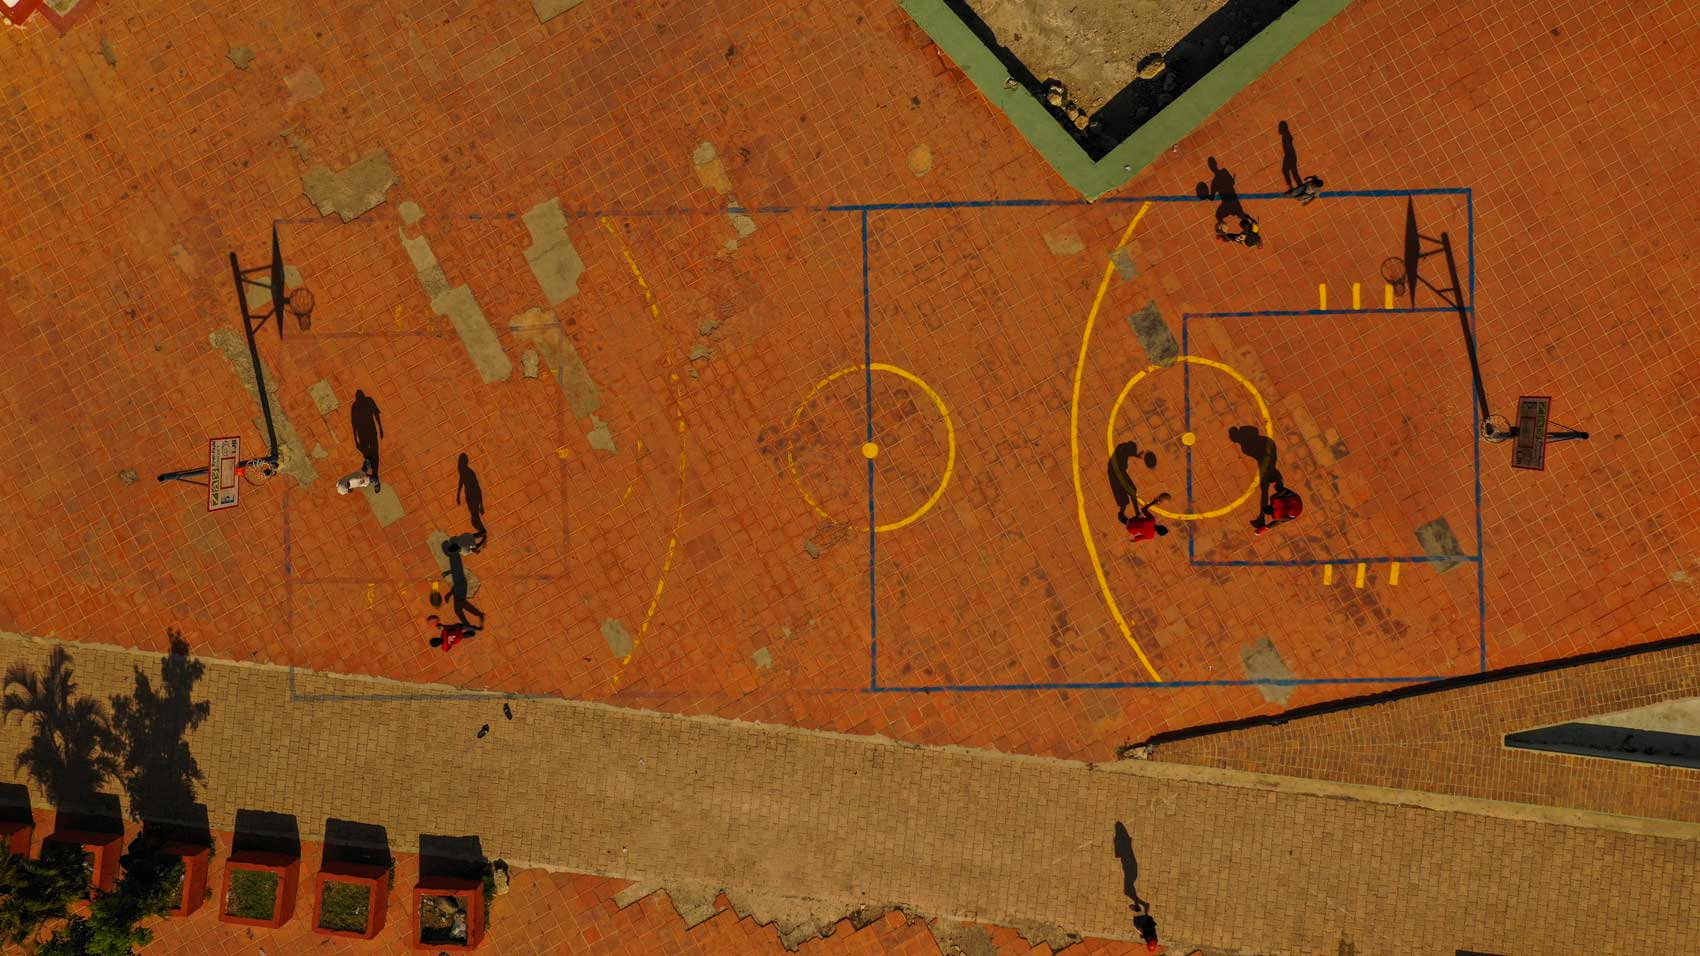 Aerial view of basketball players practicing on a court in Jacmel, Haiti